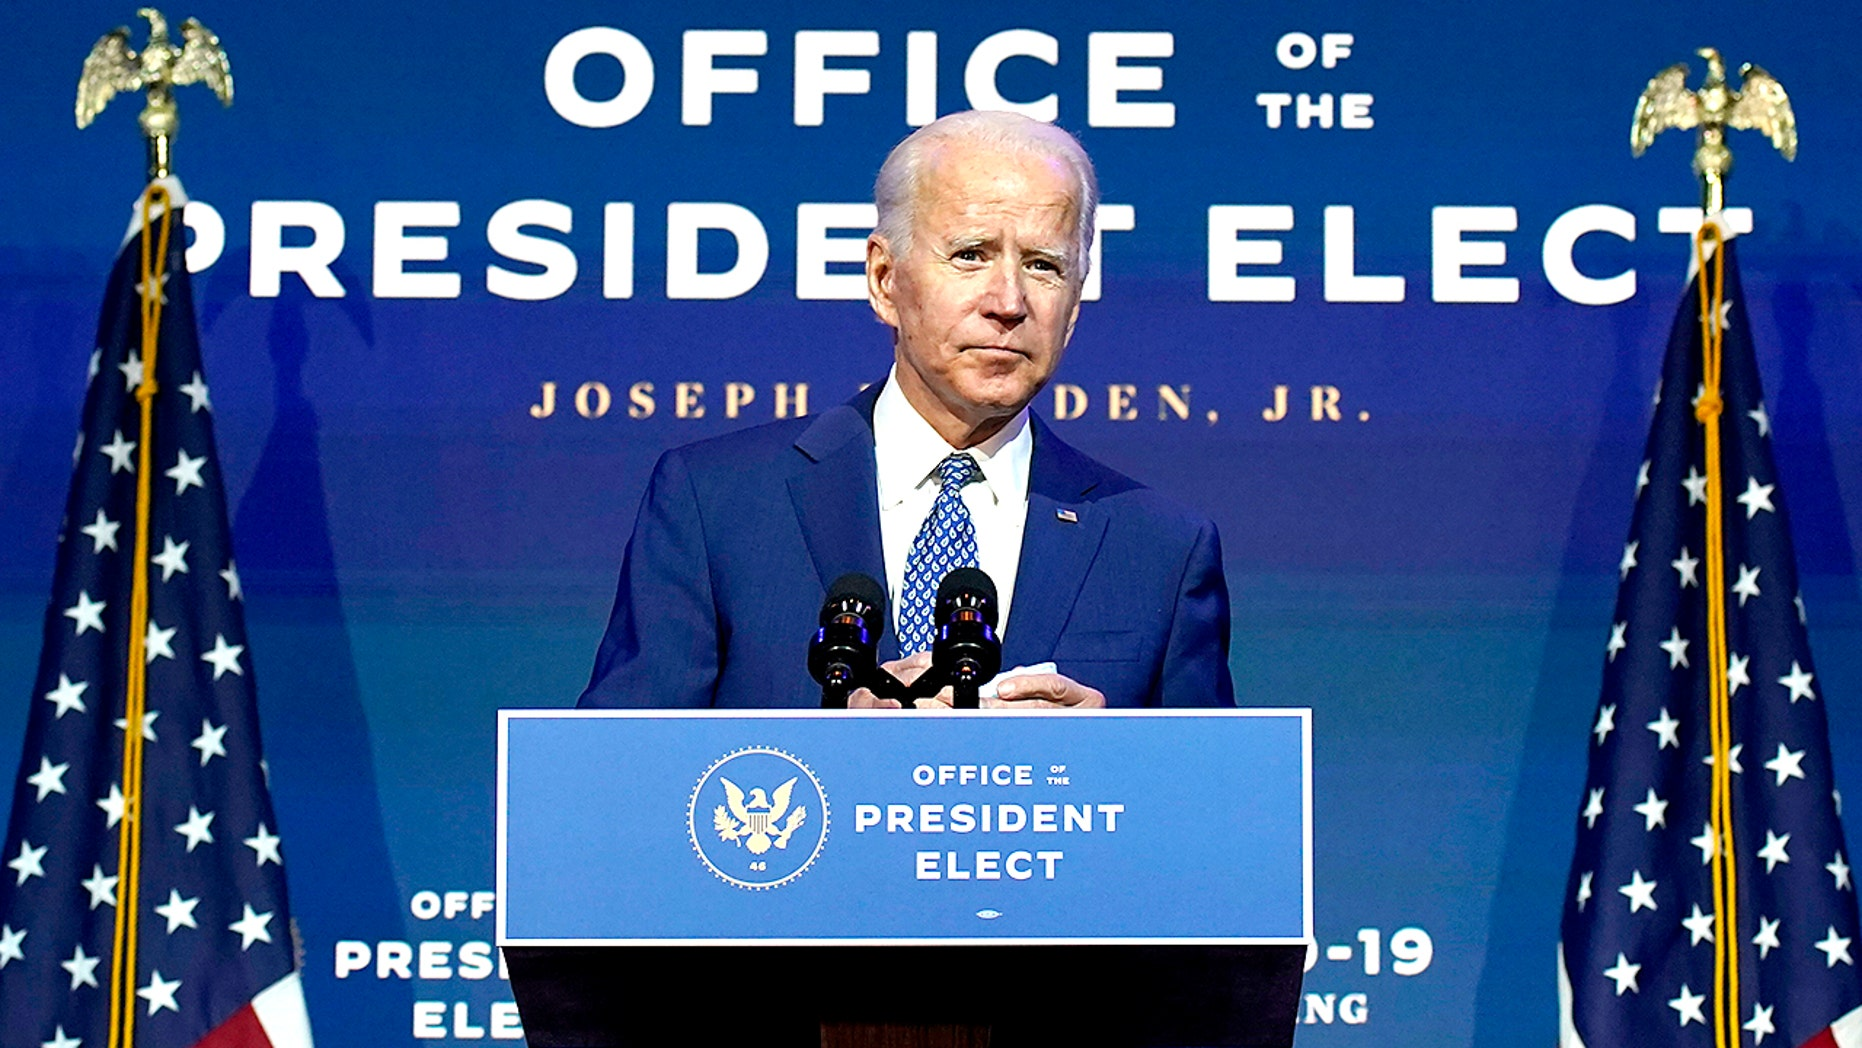 Biden plans to overhaul Trump actions by executive order on Day 1